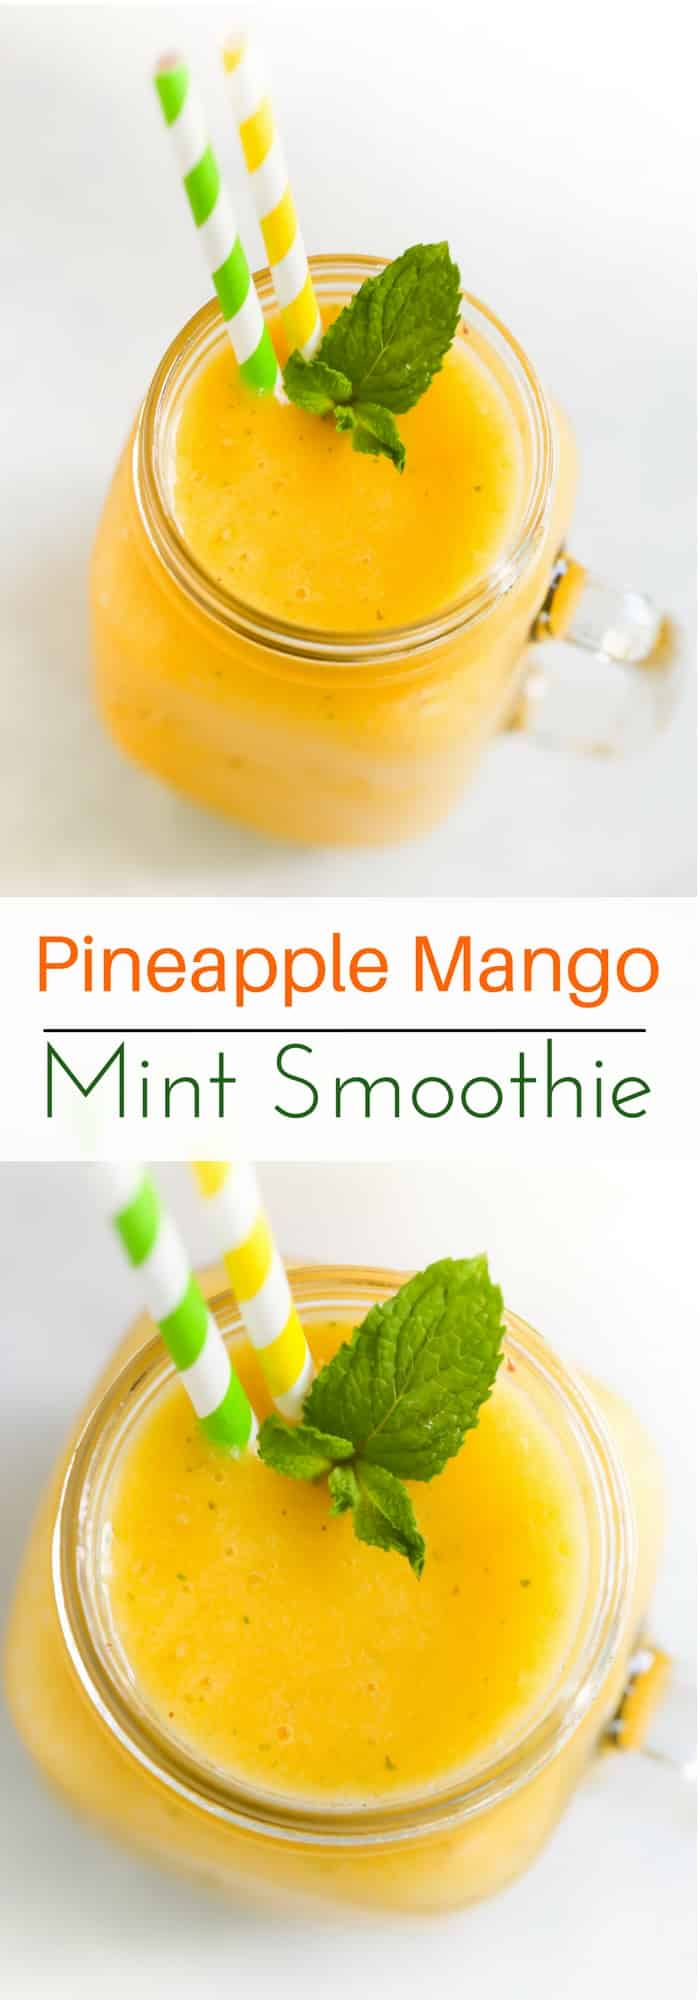 Pineapple Mango Mint Smoothie - Fresh Pineapple Mango Mint Smoothie to enjoy during summer. It only requires 4-ingredients and a blender. Enjoy!